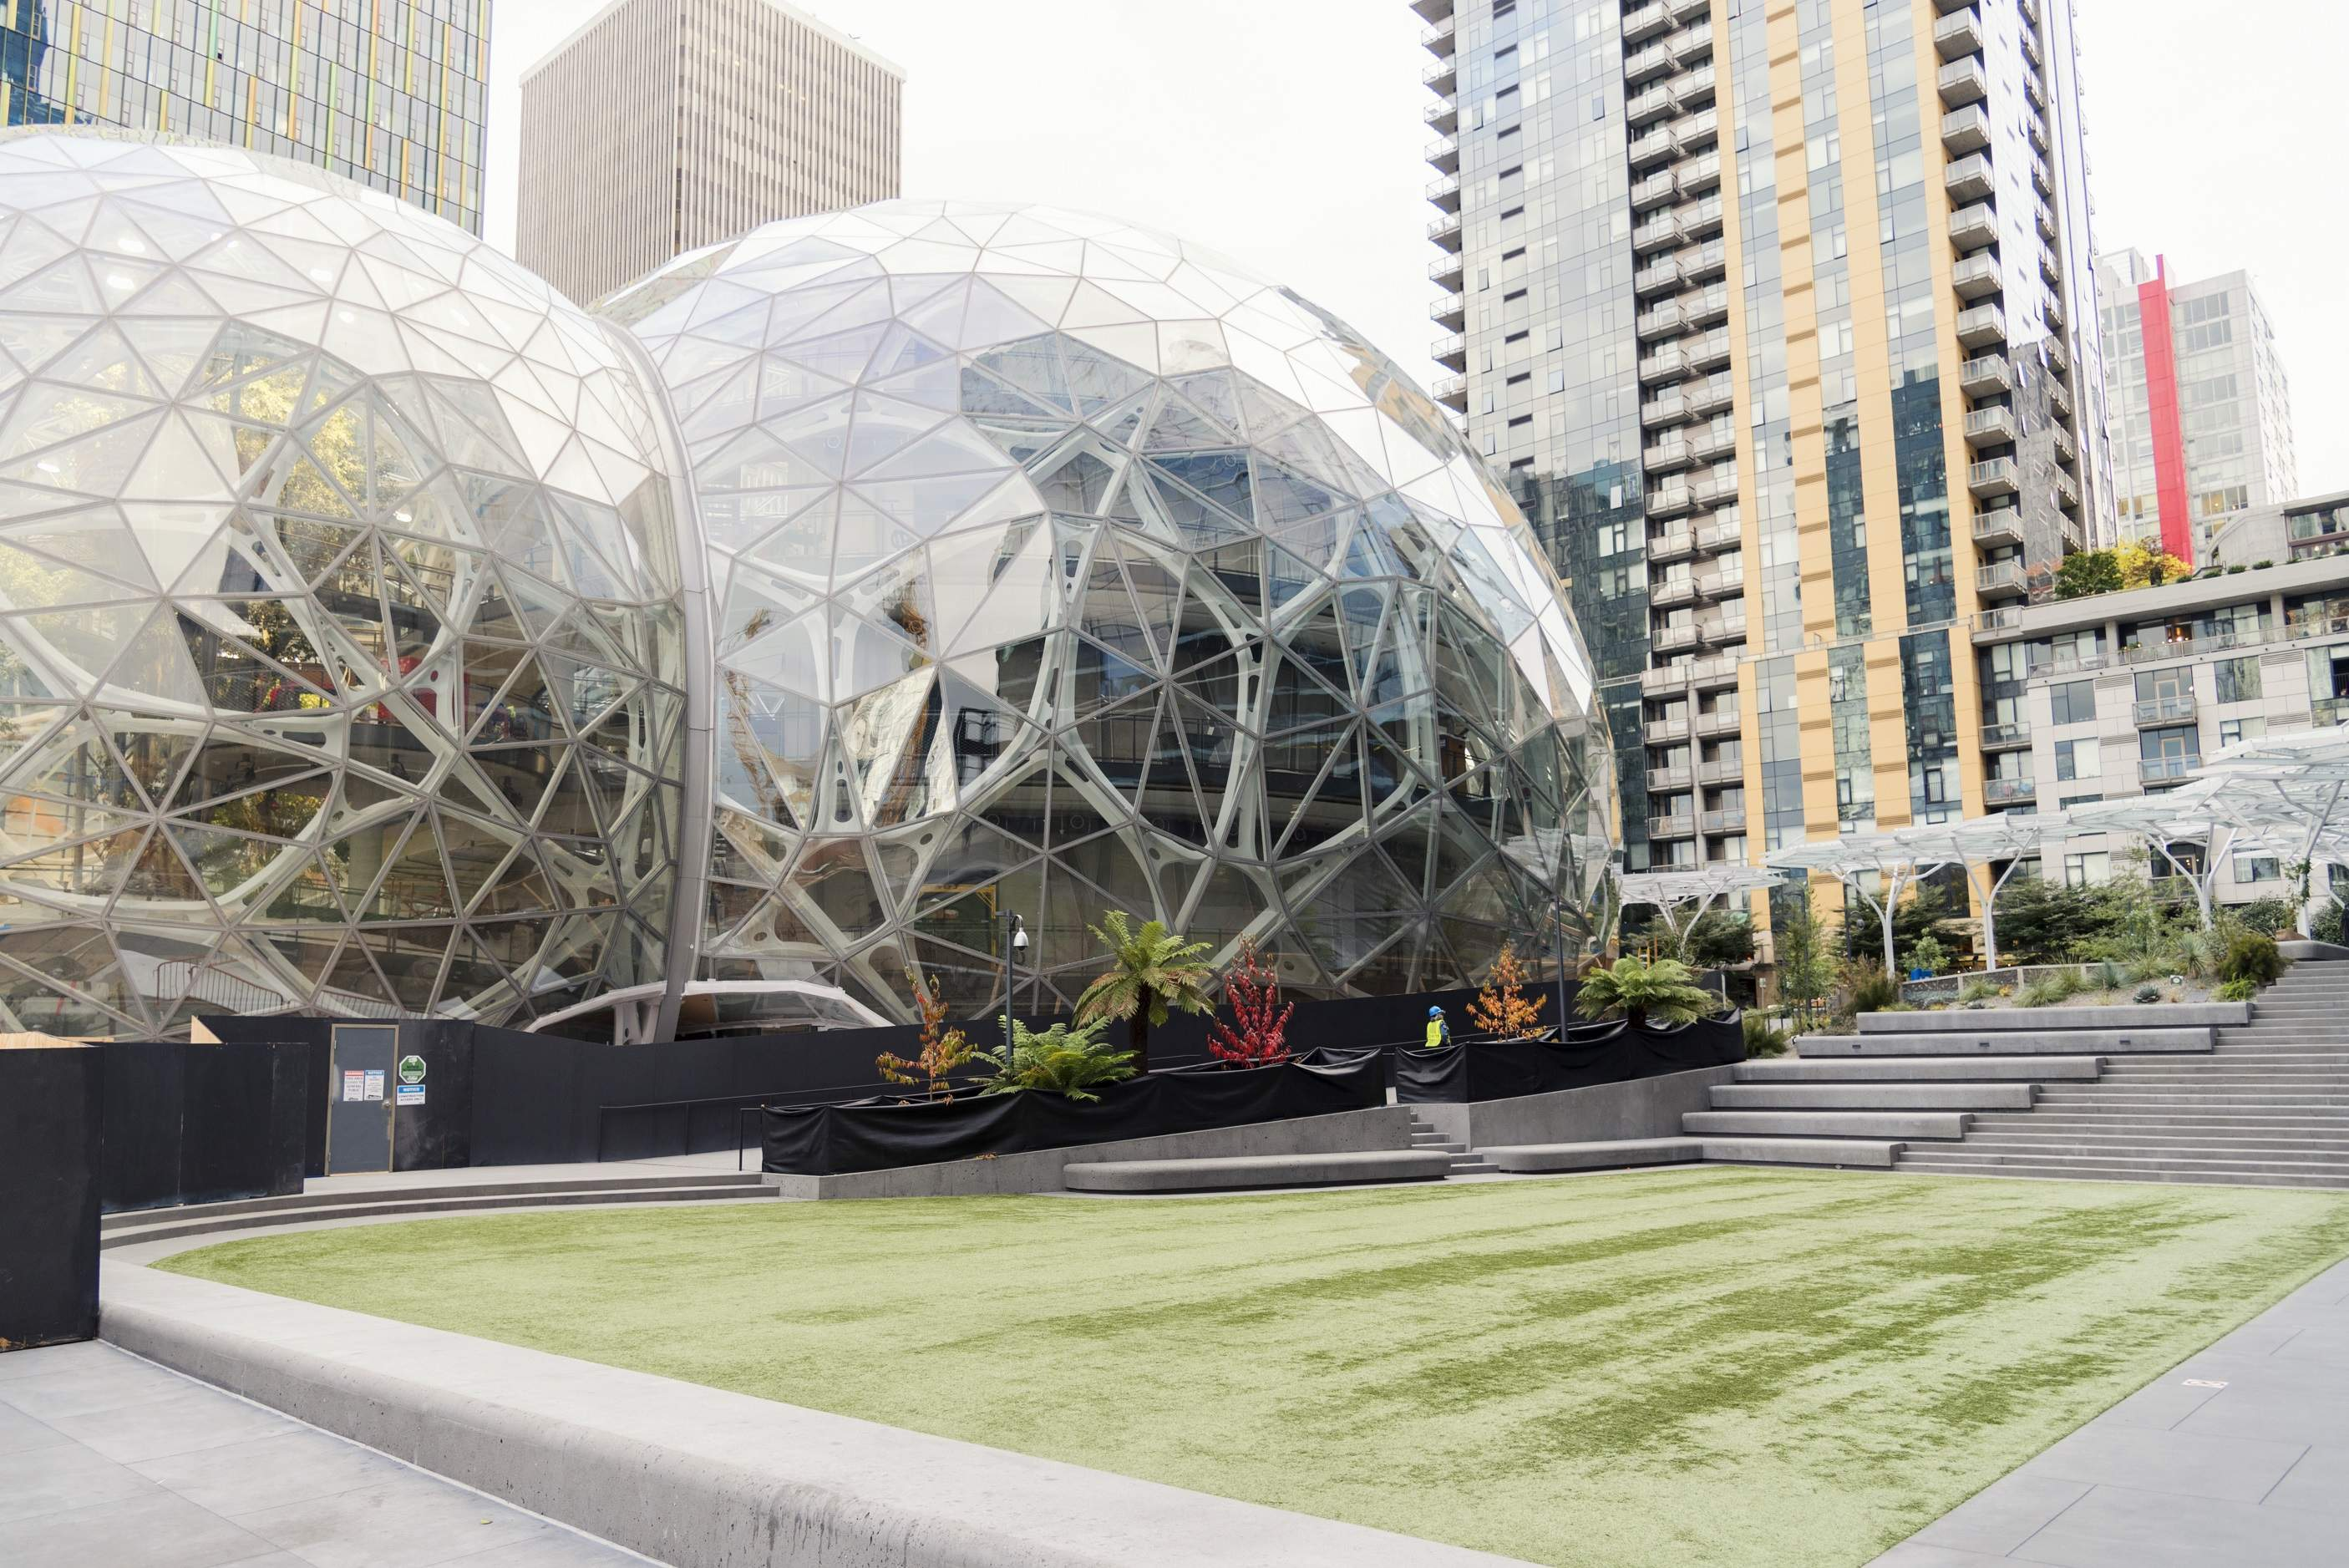 US cities and territories are competing for Amazon's new HQ2. Will their efforts pay off?